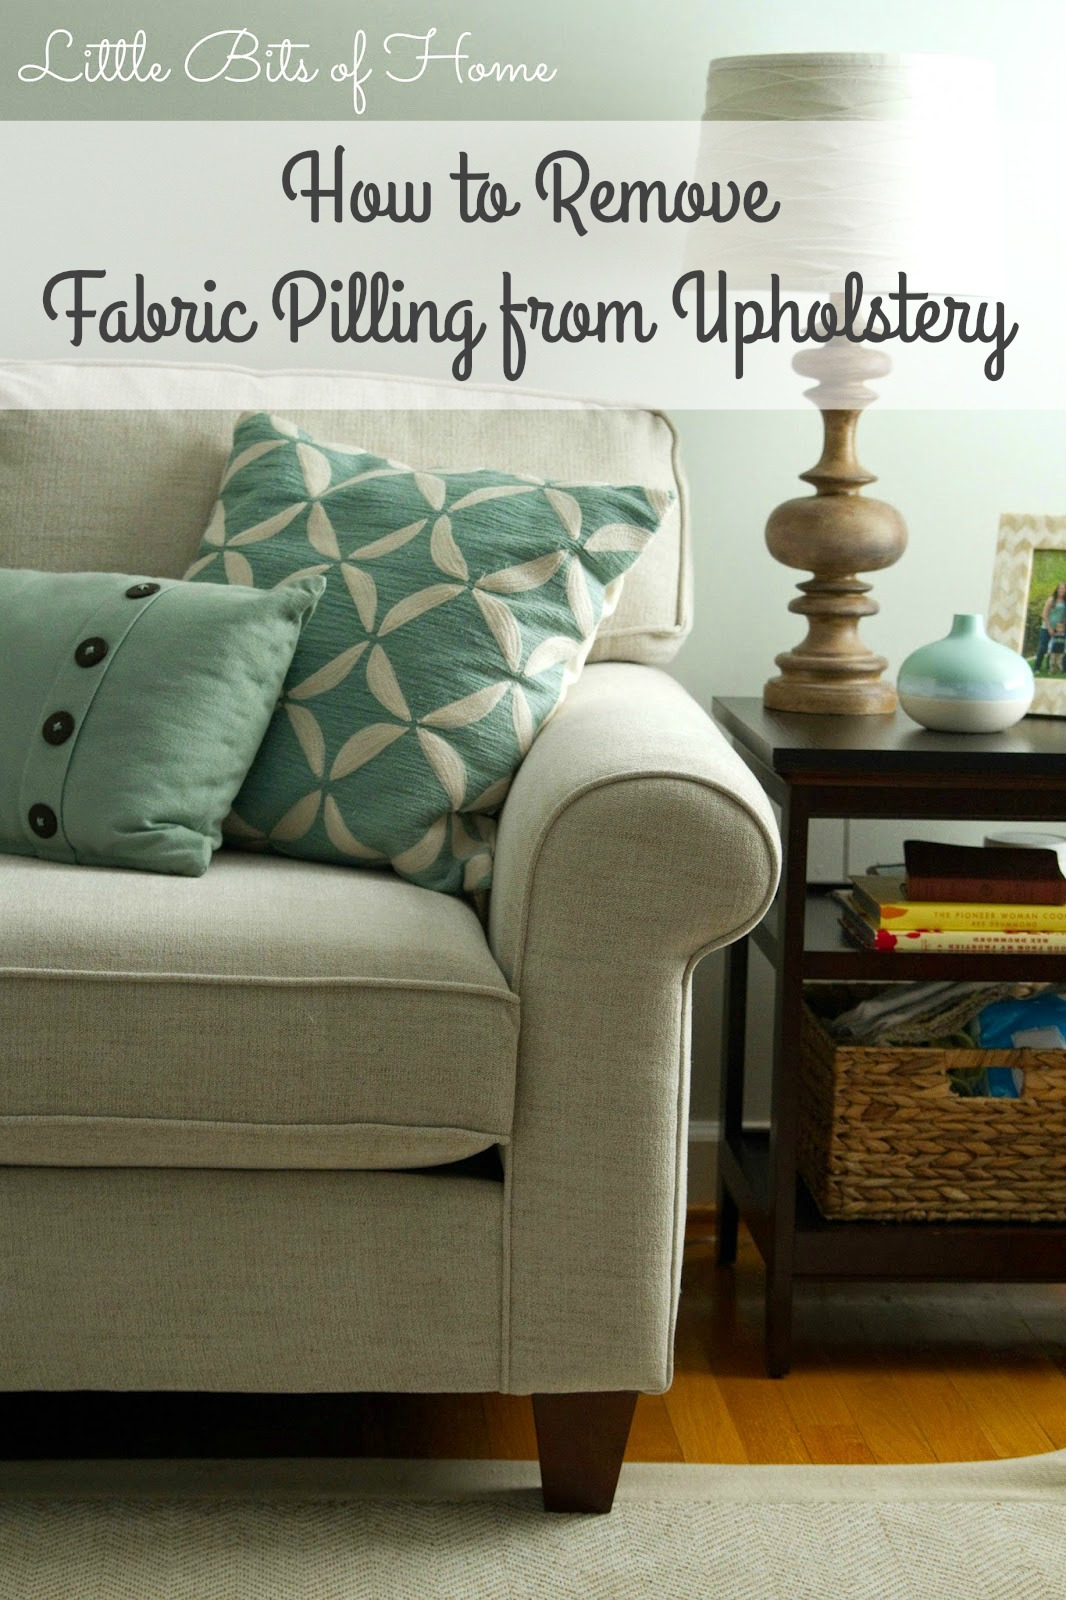 Quick Tip How To Remove Fabric Pilling From Upholstery